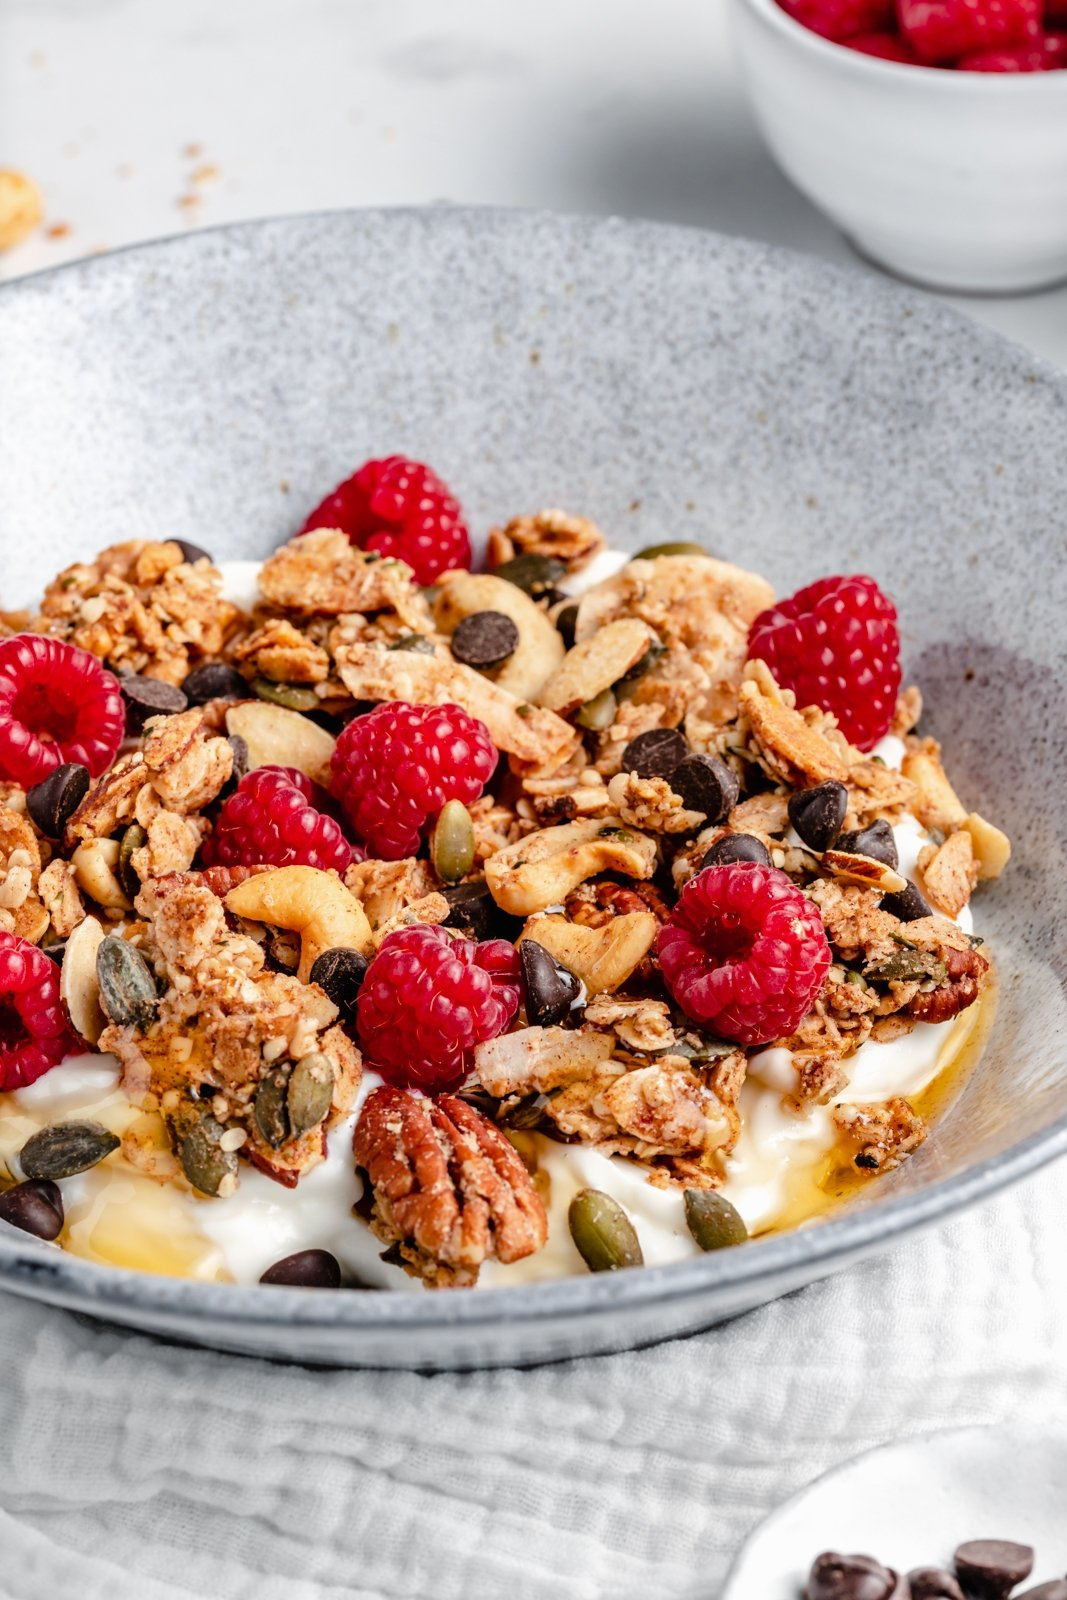 nut and seed granola in a bowl with yogurt and raspberries